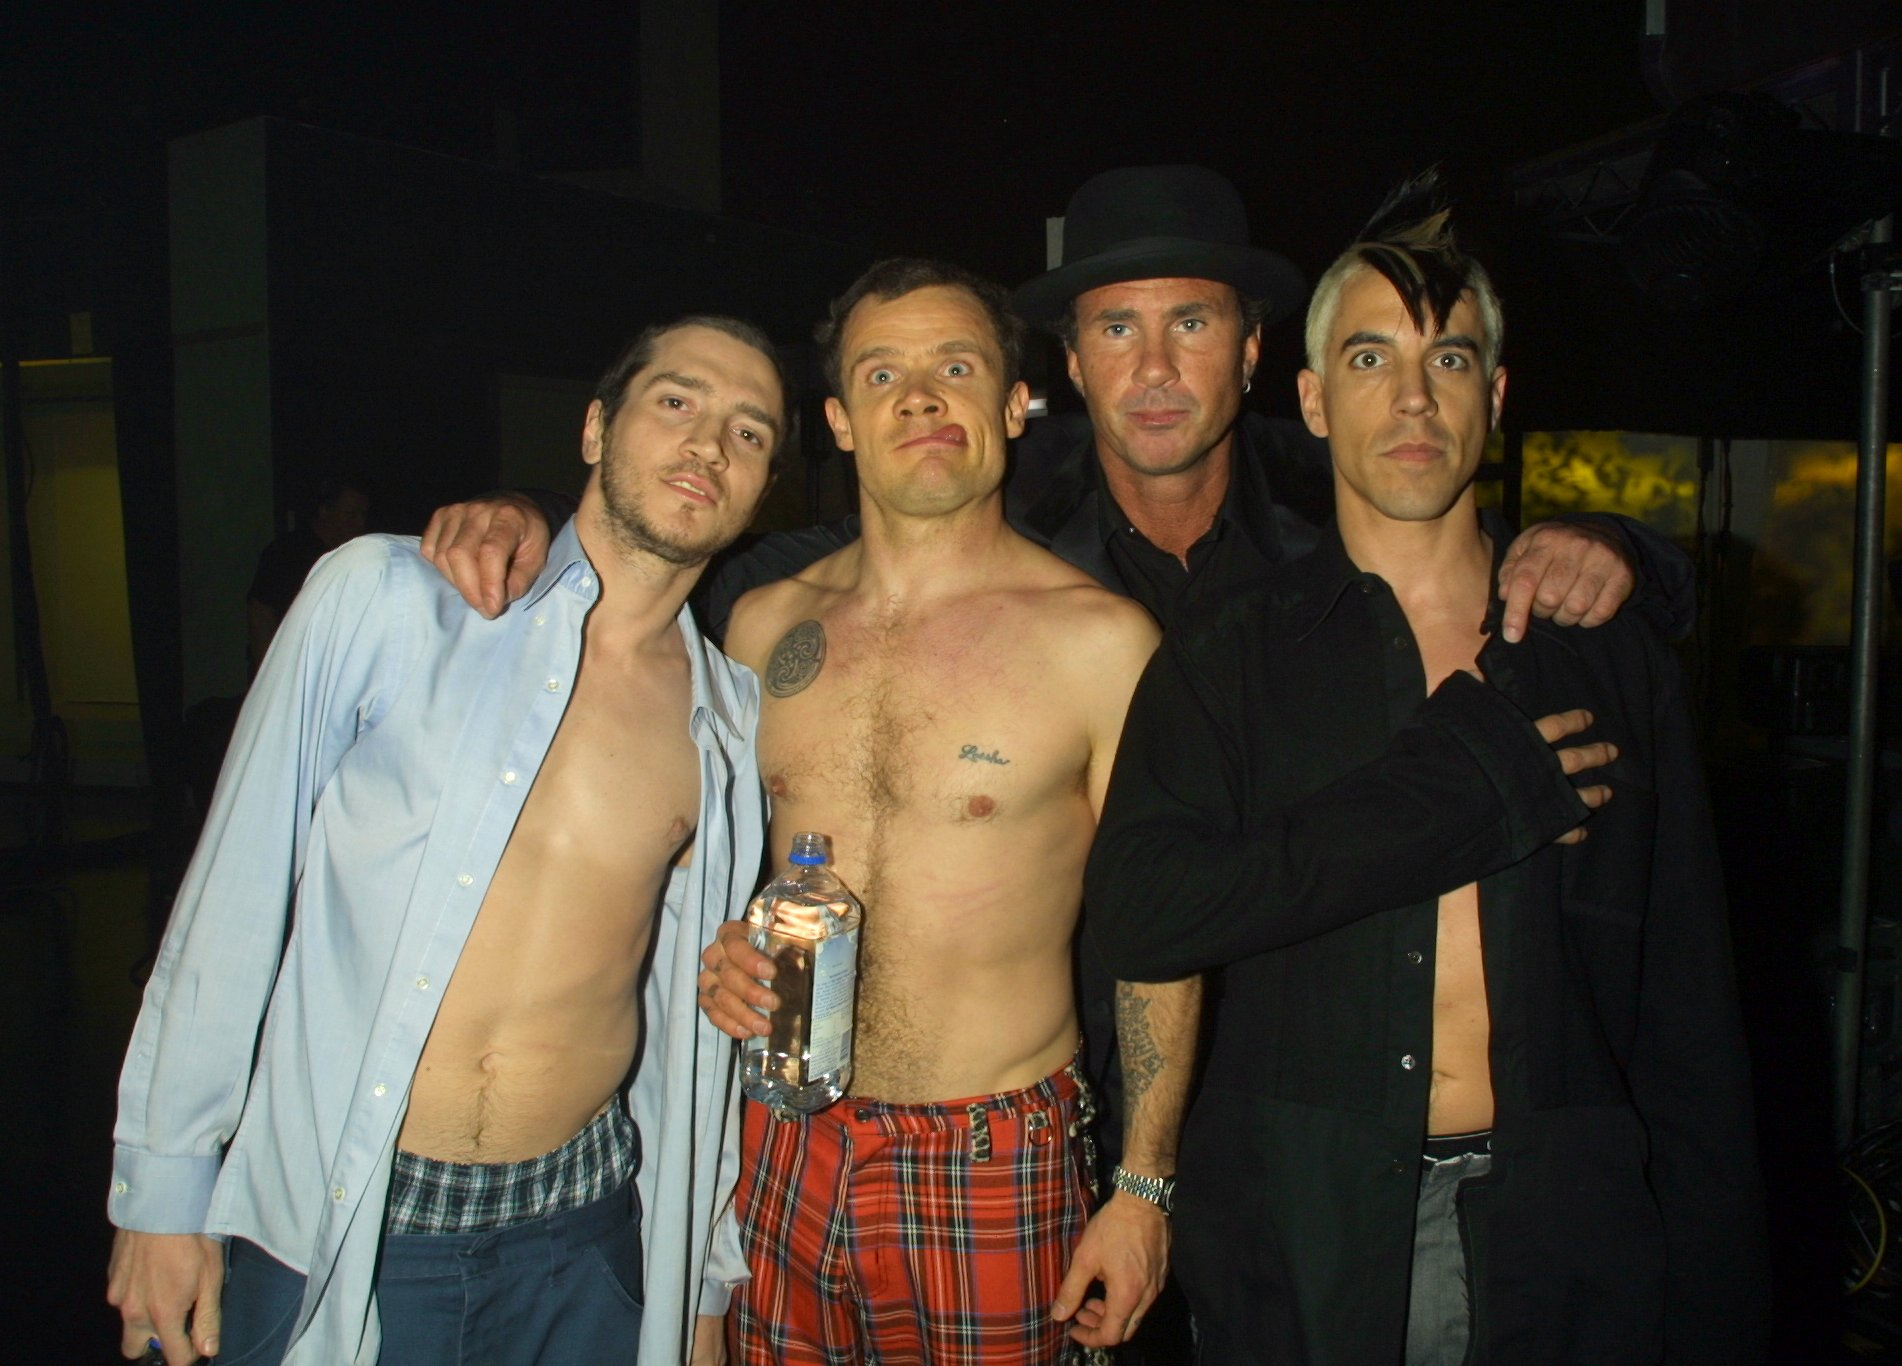 Red Hot Chili Peppers backstage during The 2000 My VH1 Music Awards at Shrine Auditorium in Los Angeles, California, United States. (Photo by KMazur/WireImage)